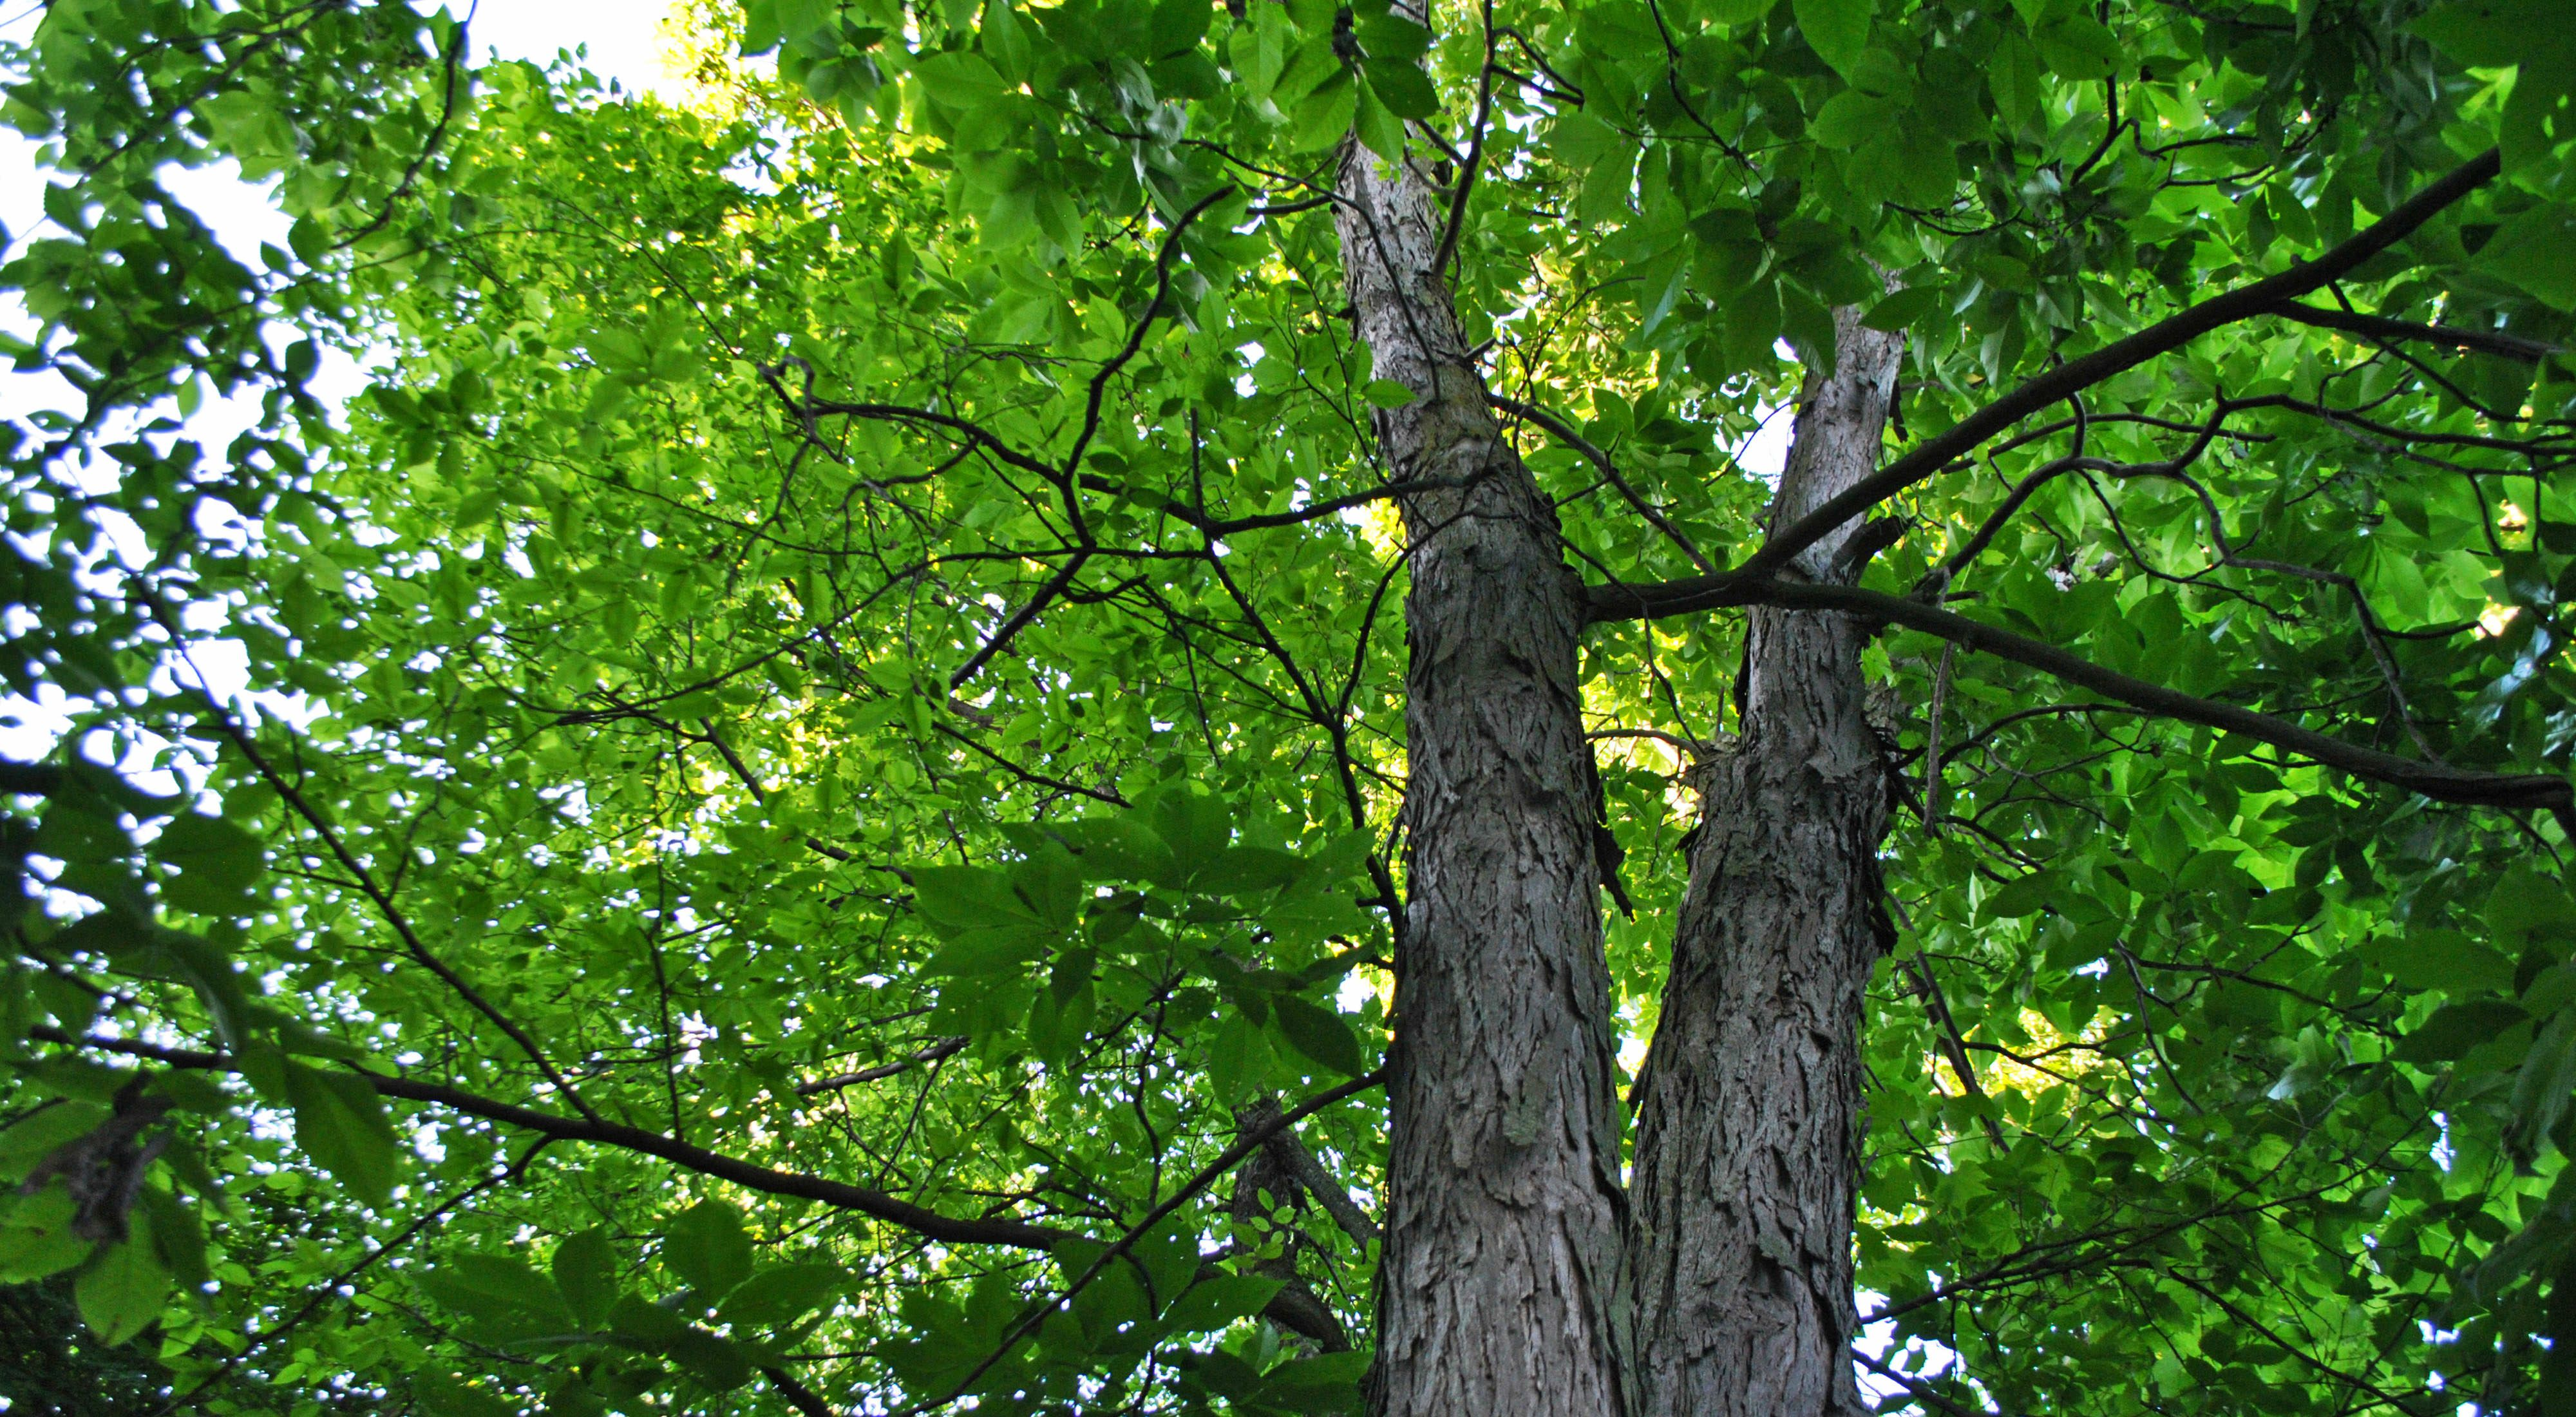 Looking up the trunk of a shagbark hickory tree.